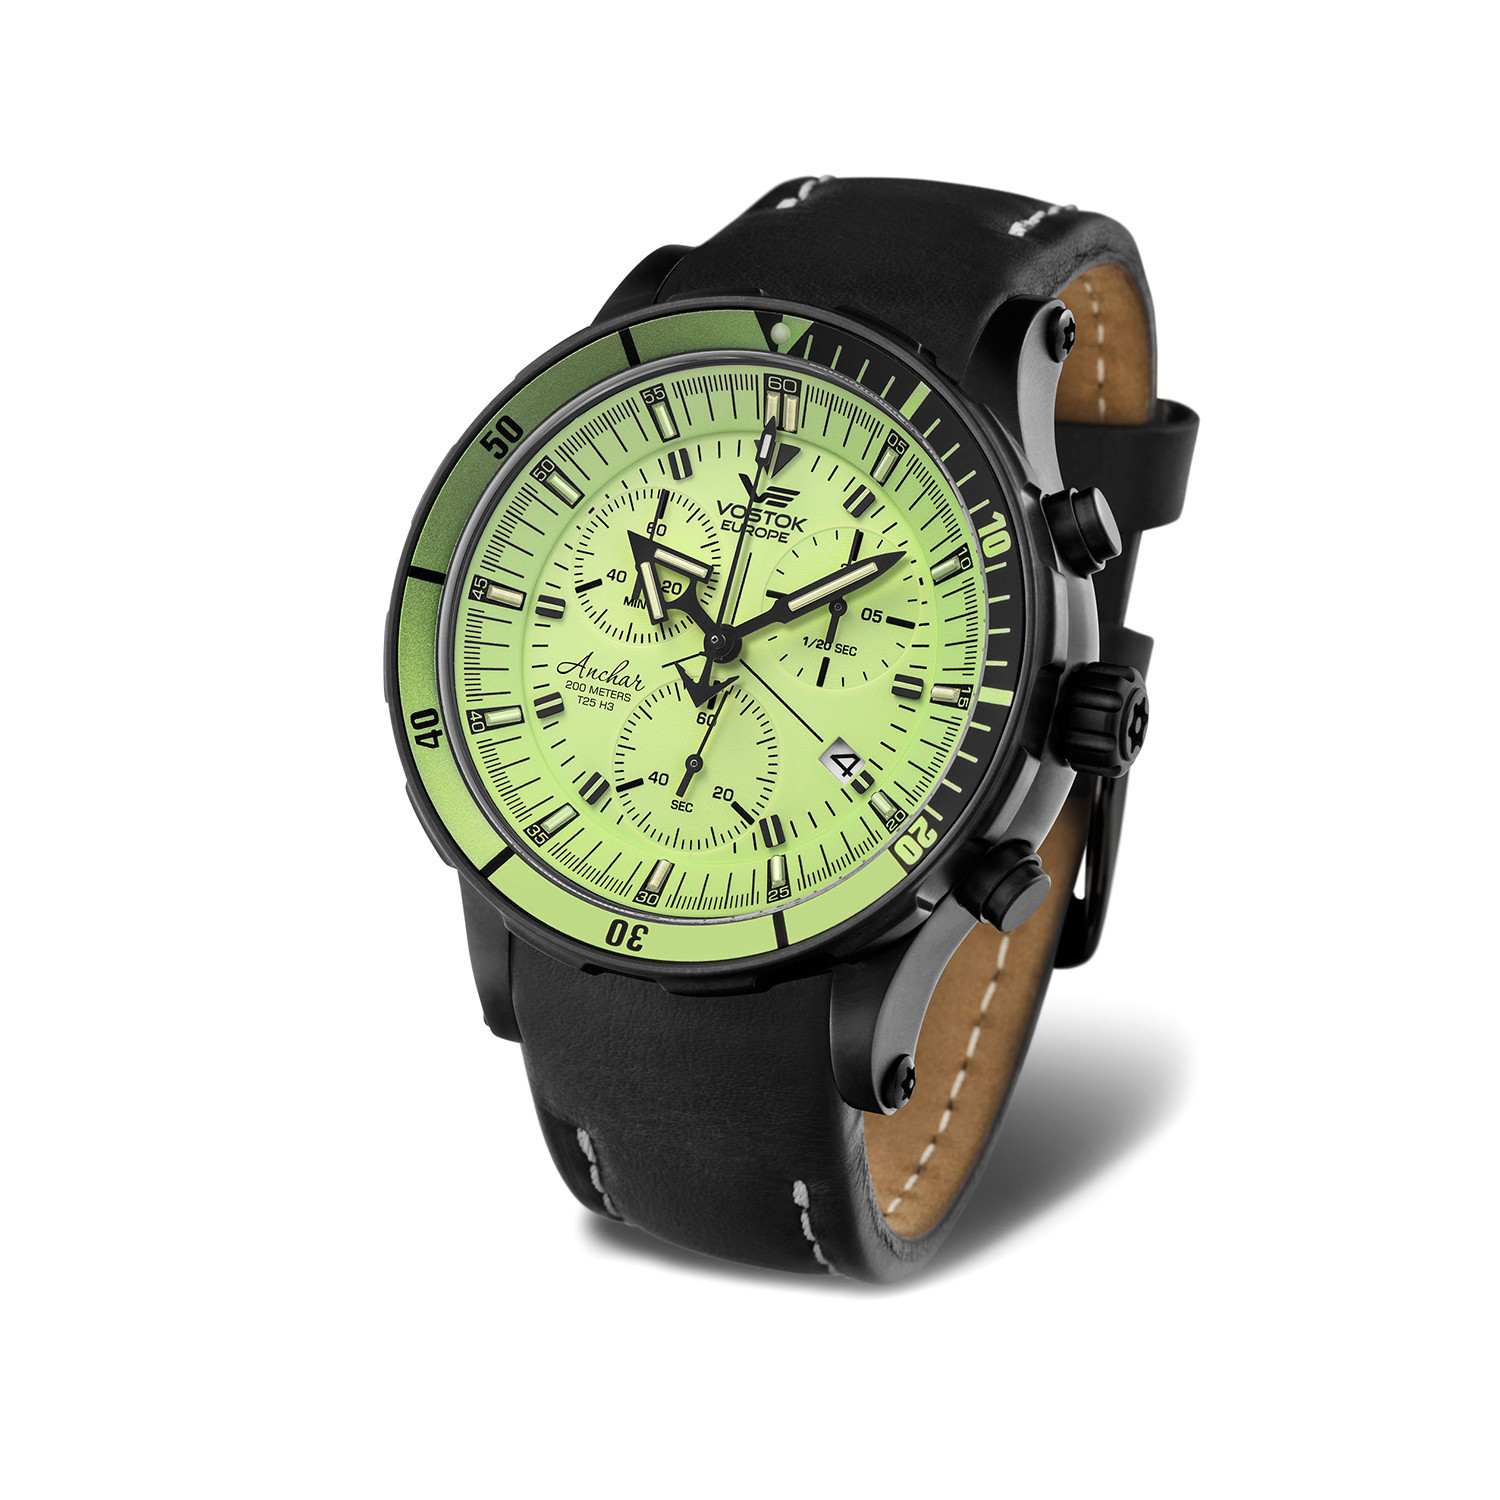 Vostok europe anchar submarine chrono black black watch 6s30 5104243 ebay for Vostok europe watches